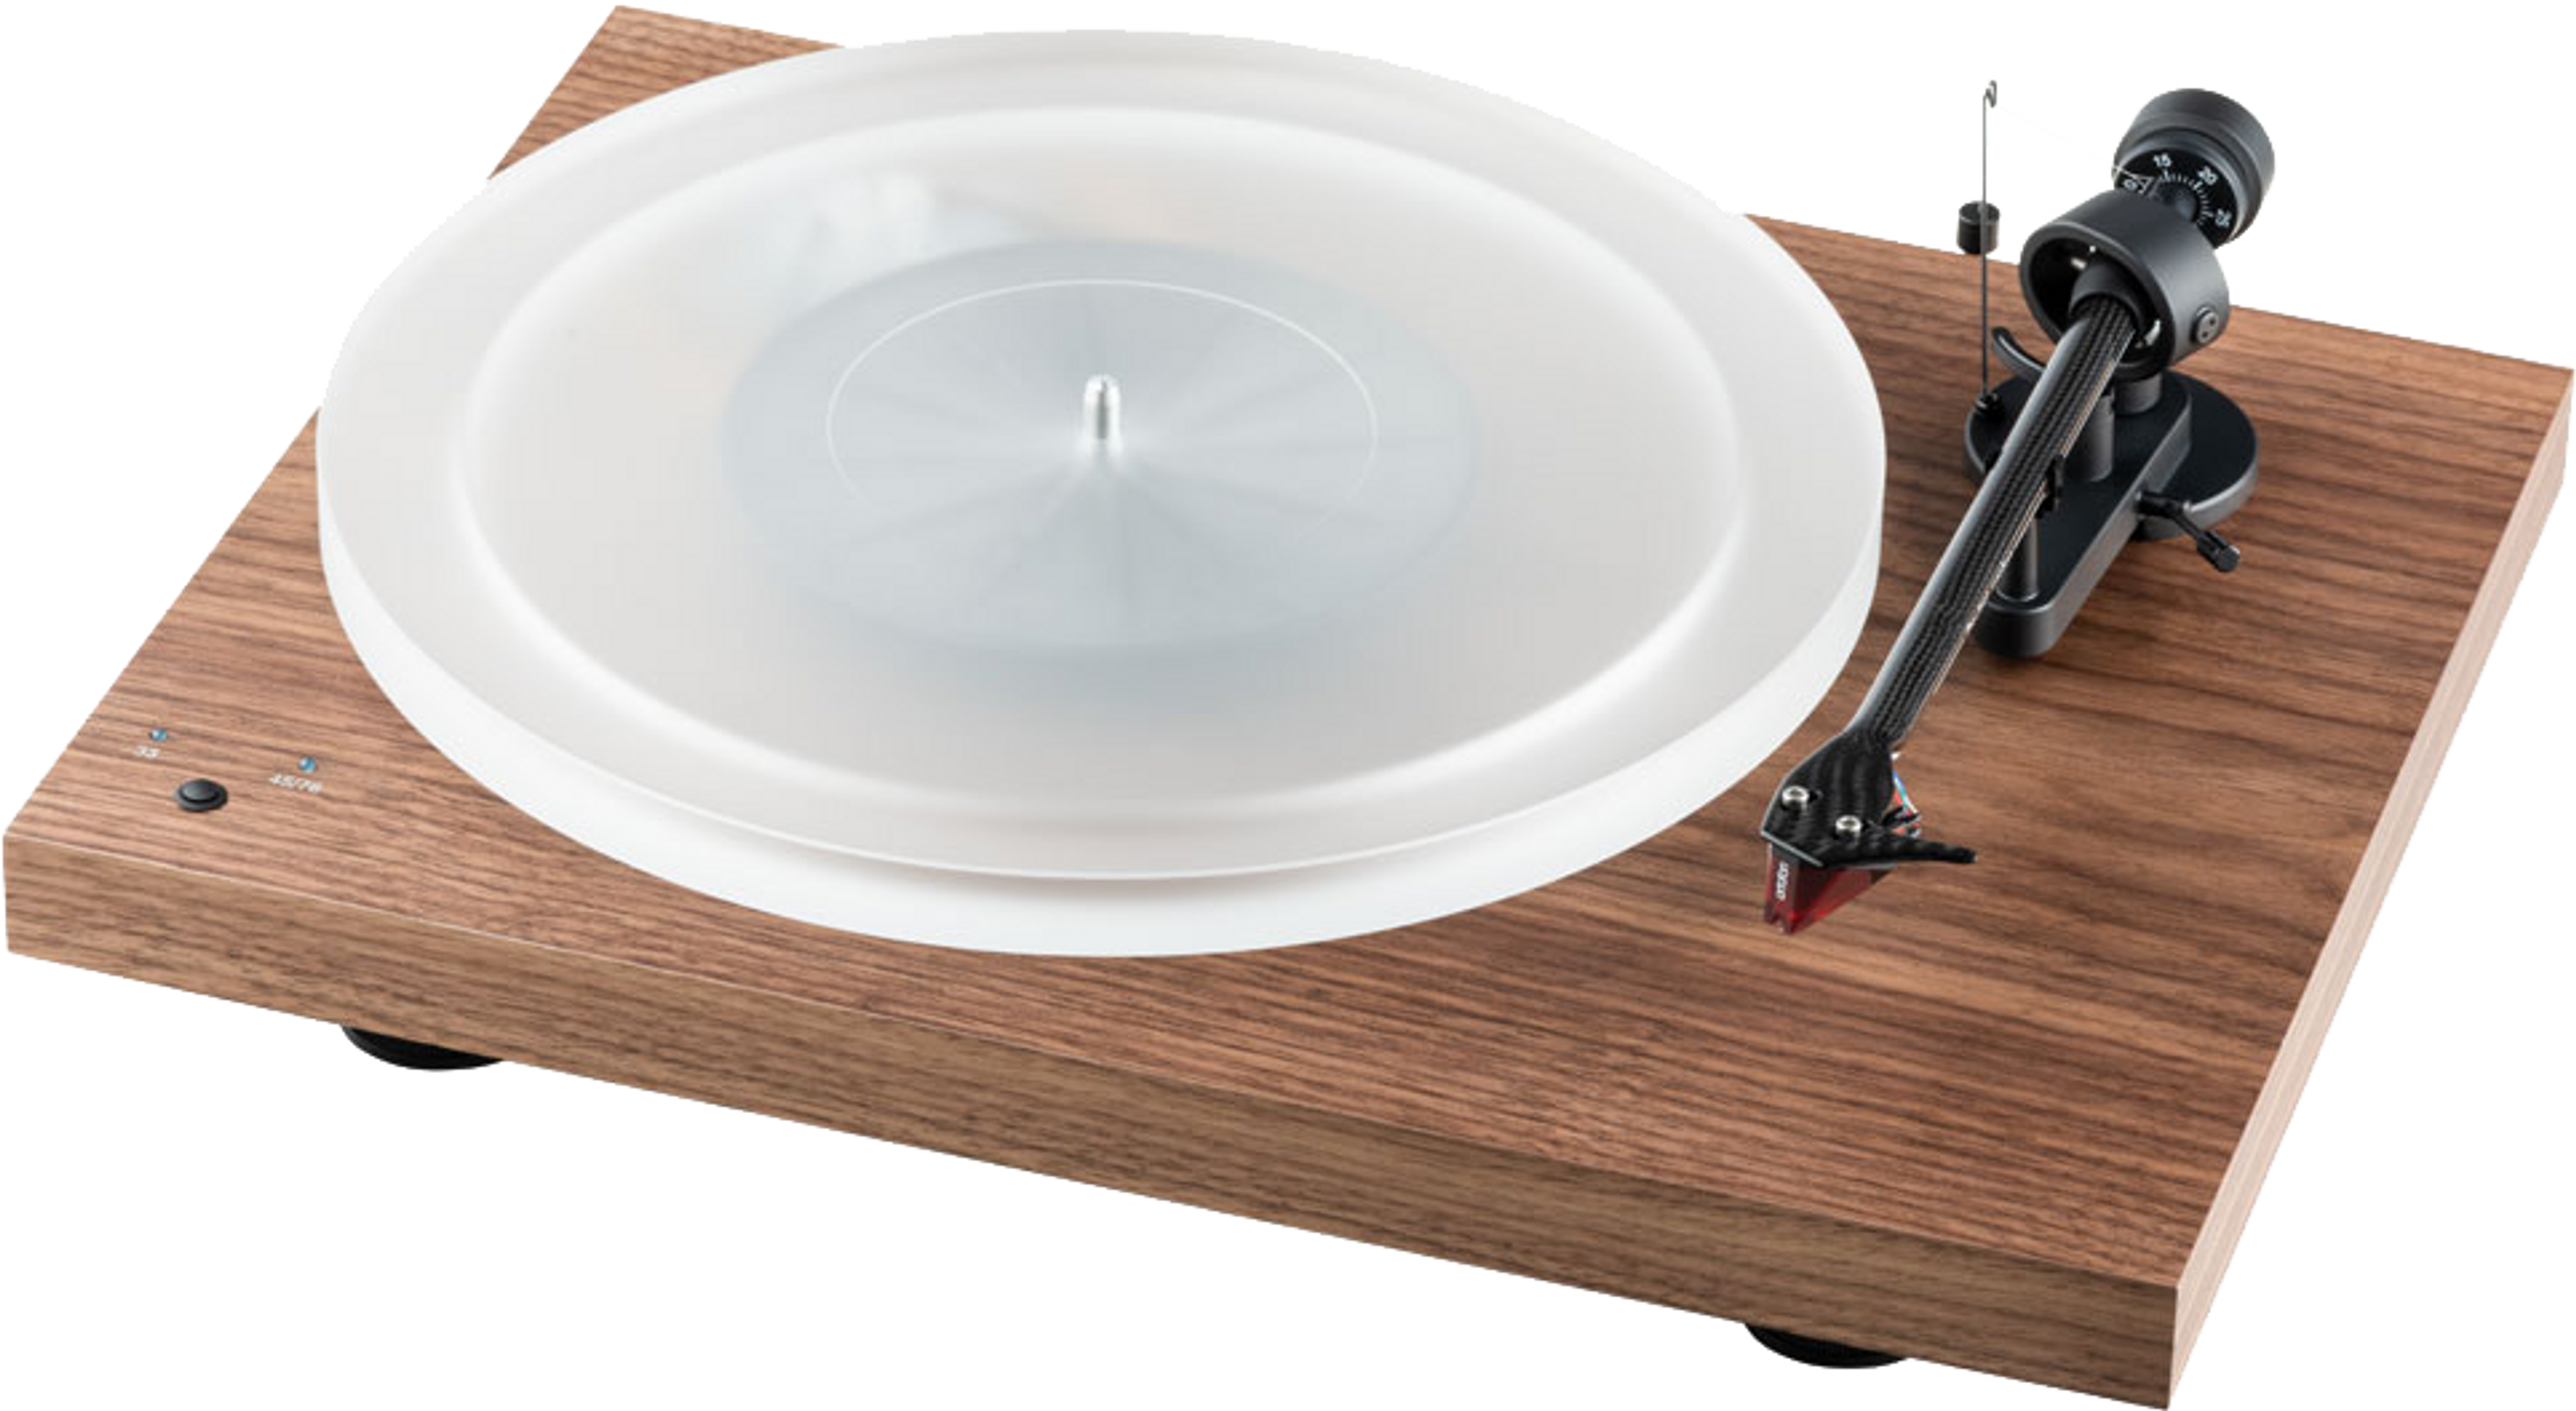 Pro-Ject Debut Carbon Turntable walnut